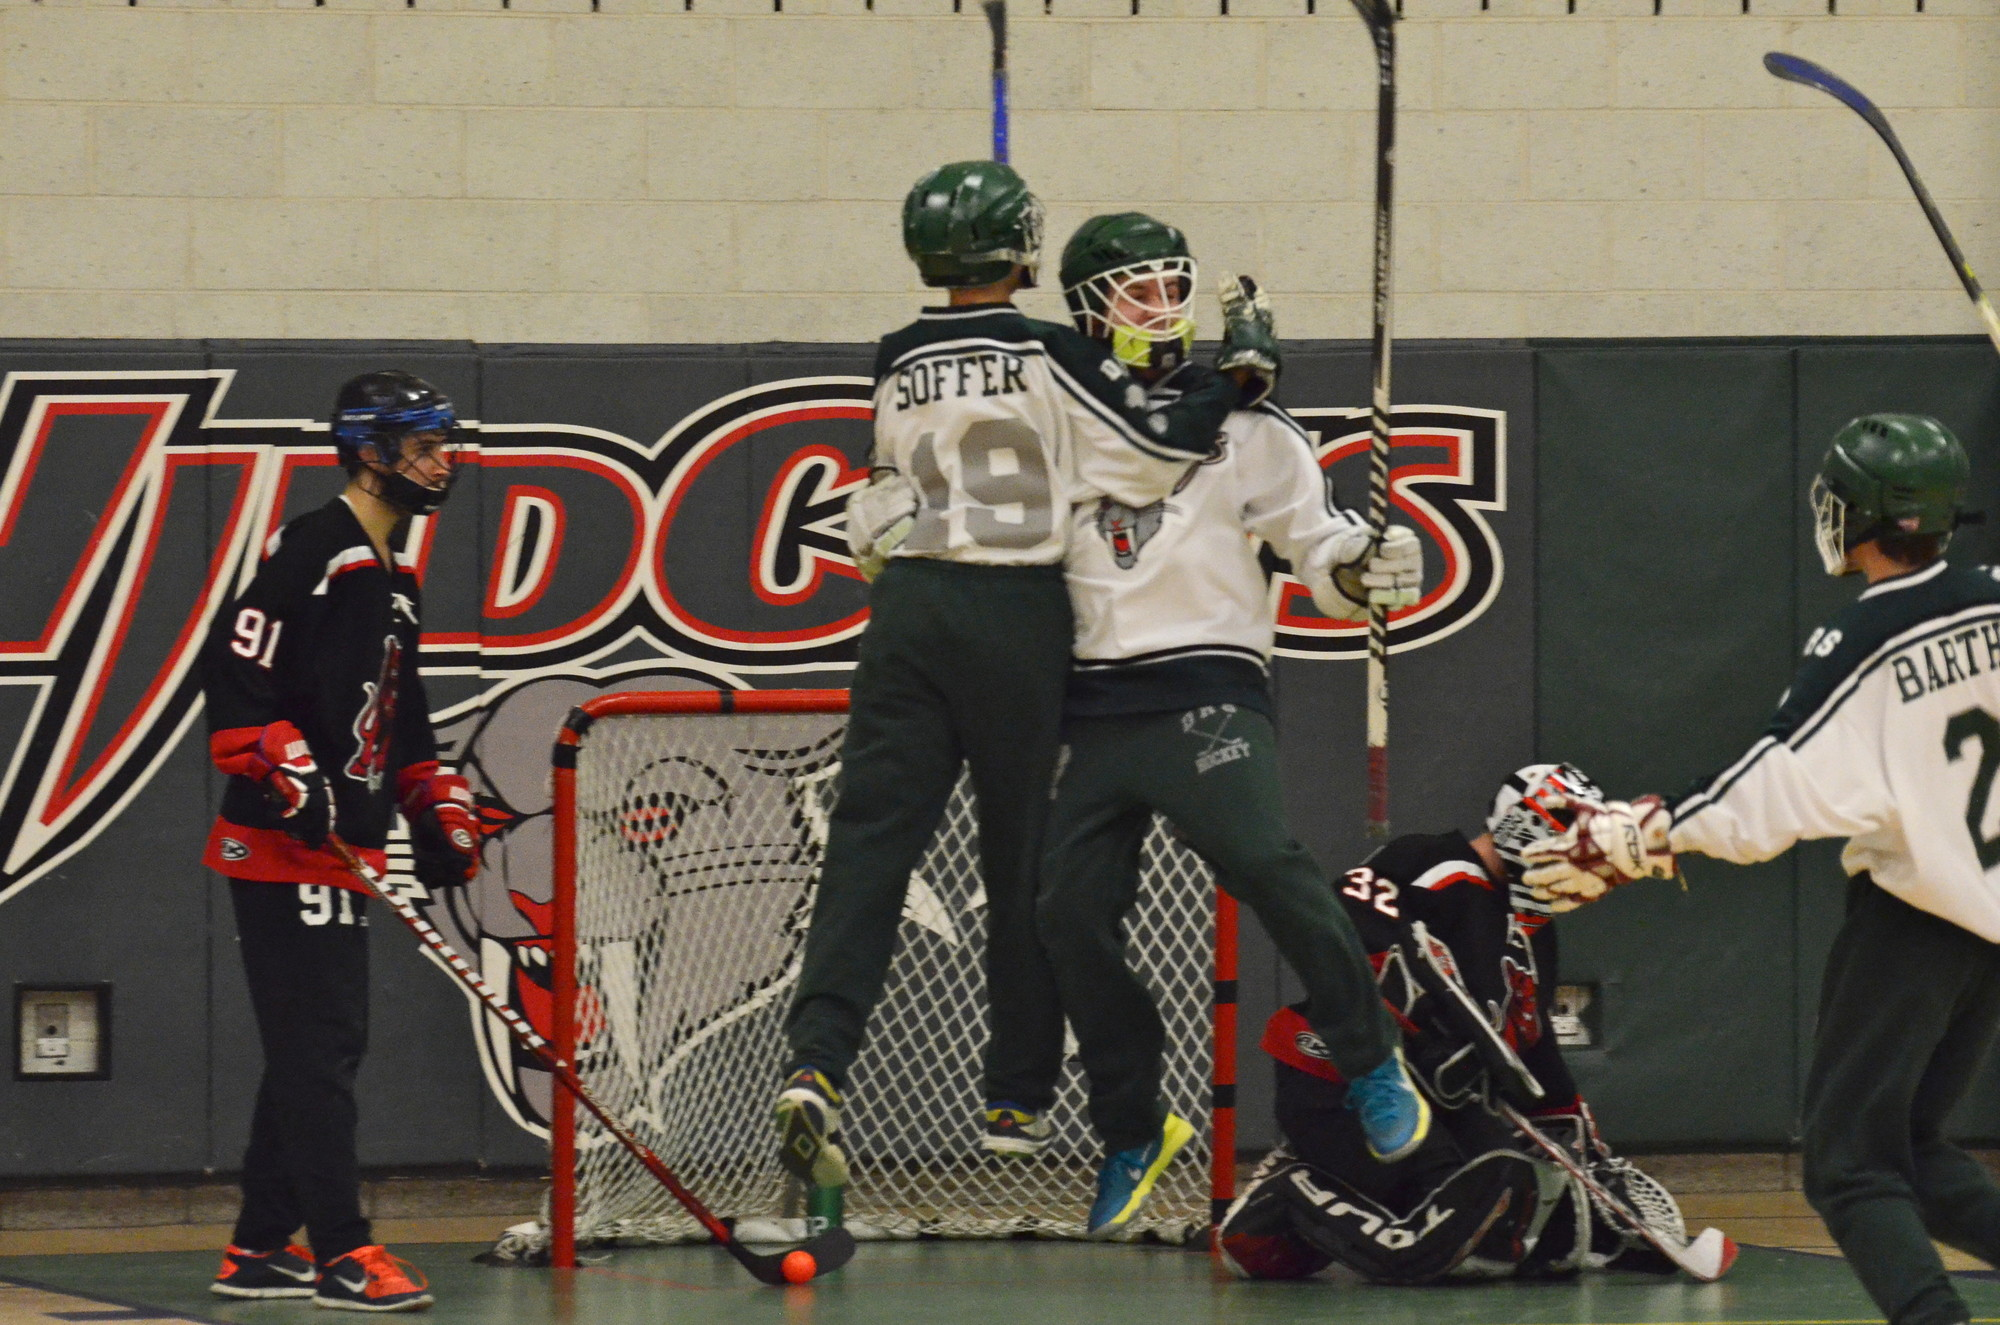 The DRS Wildcats floor hockey team advanced to the league finals. David Soffer (19) celebrated one of his team's eight goals with Avi Genachowski.